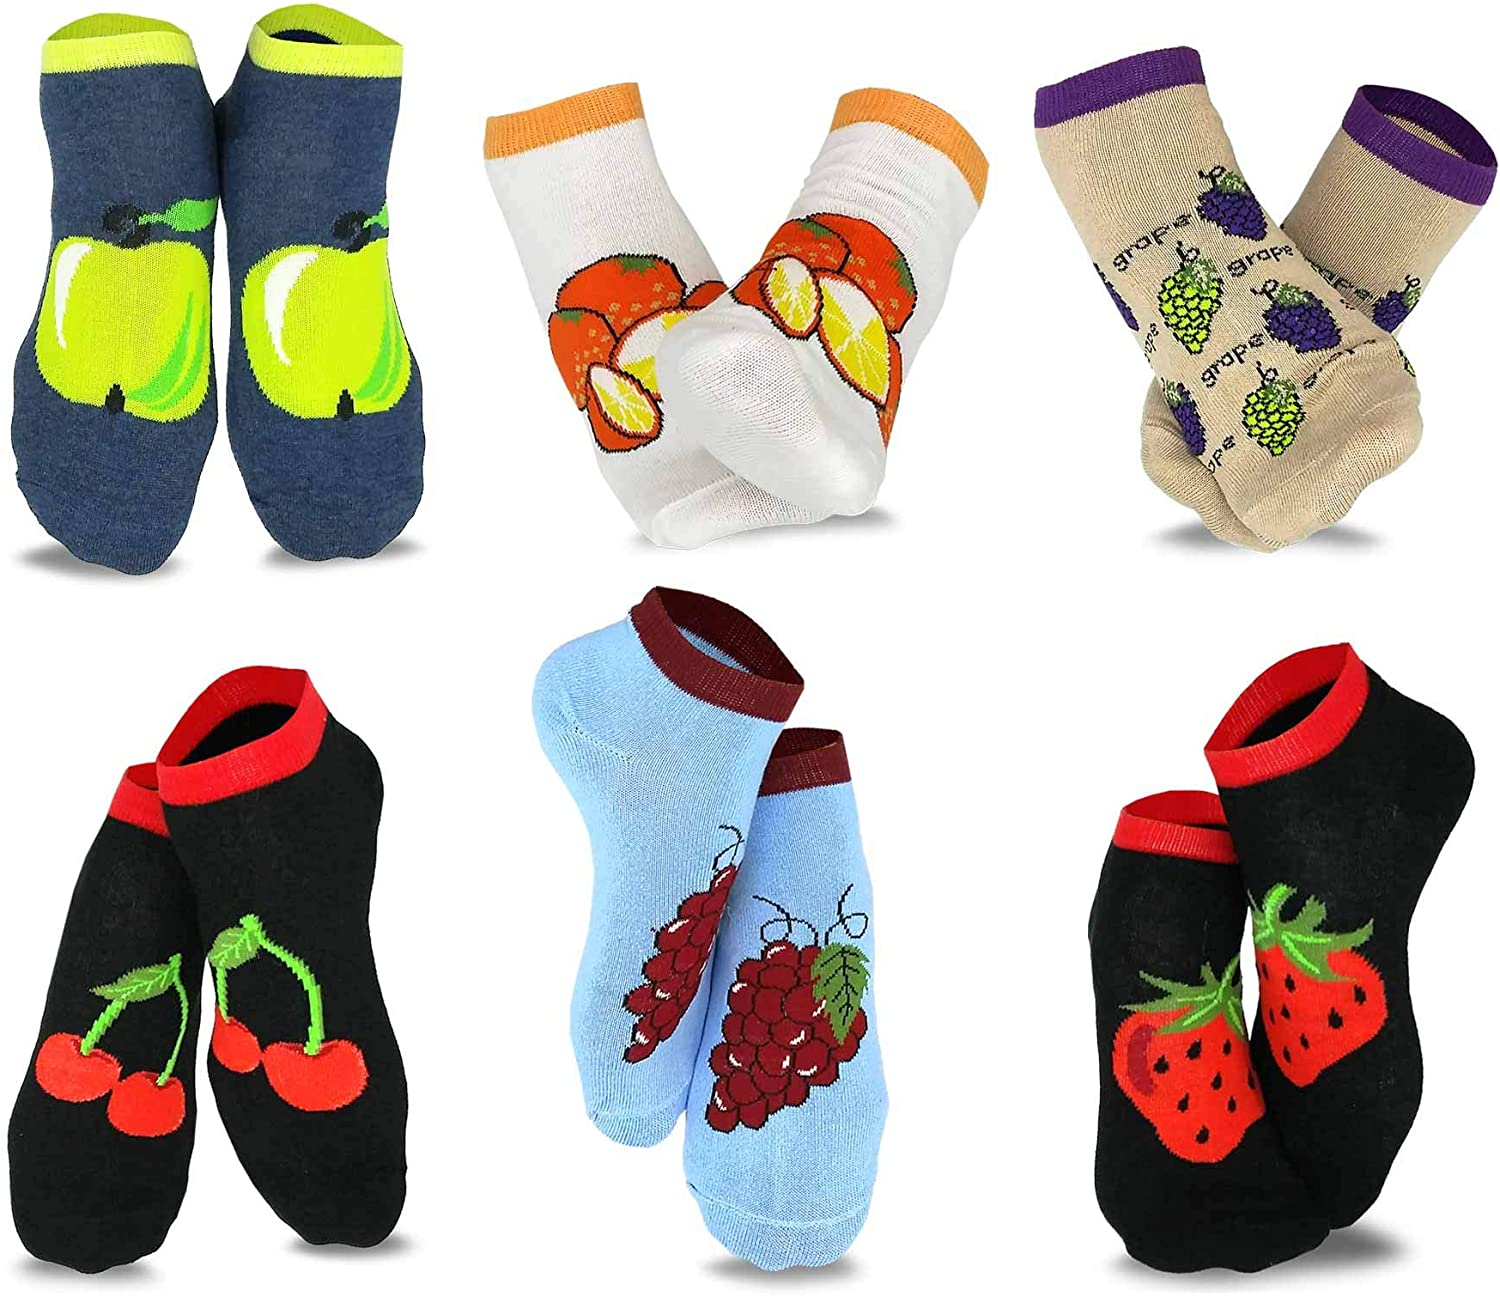 TeeHee Women's Casual and Novelty No Show Low Cut Socks 6-Pack